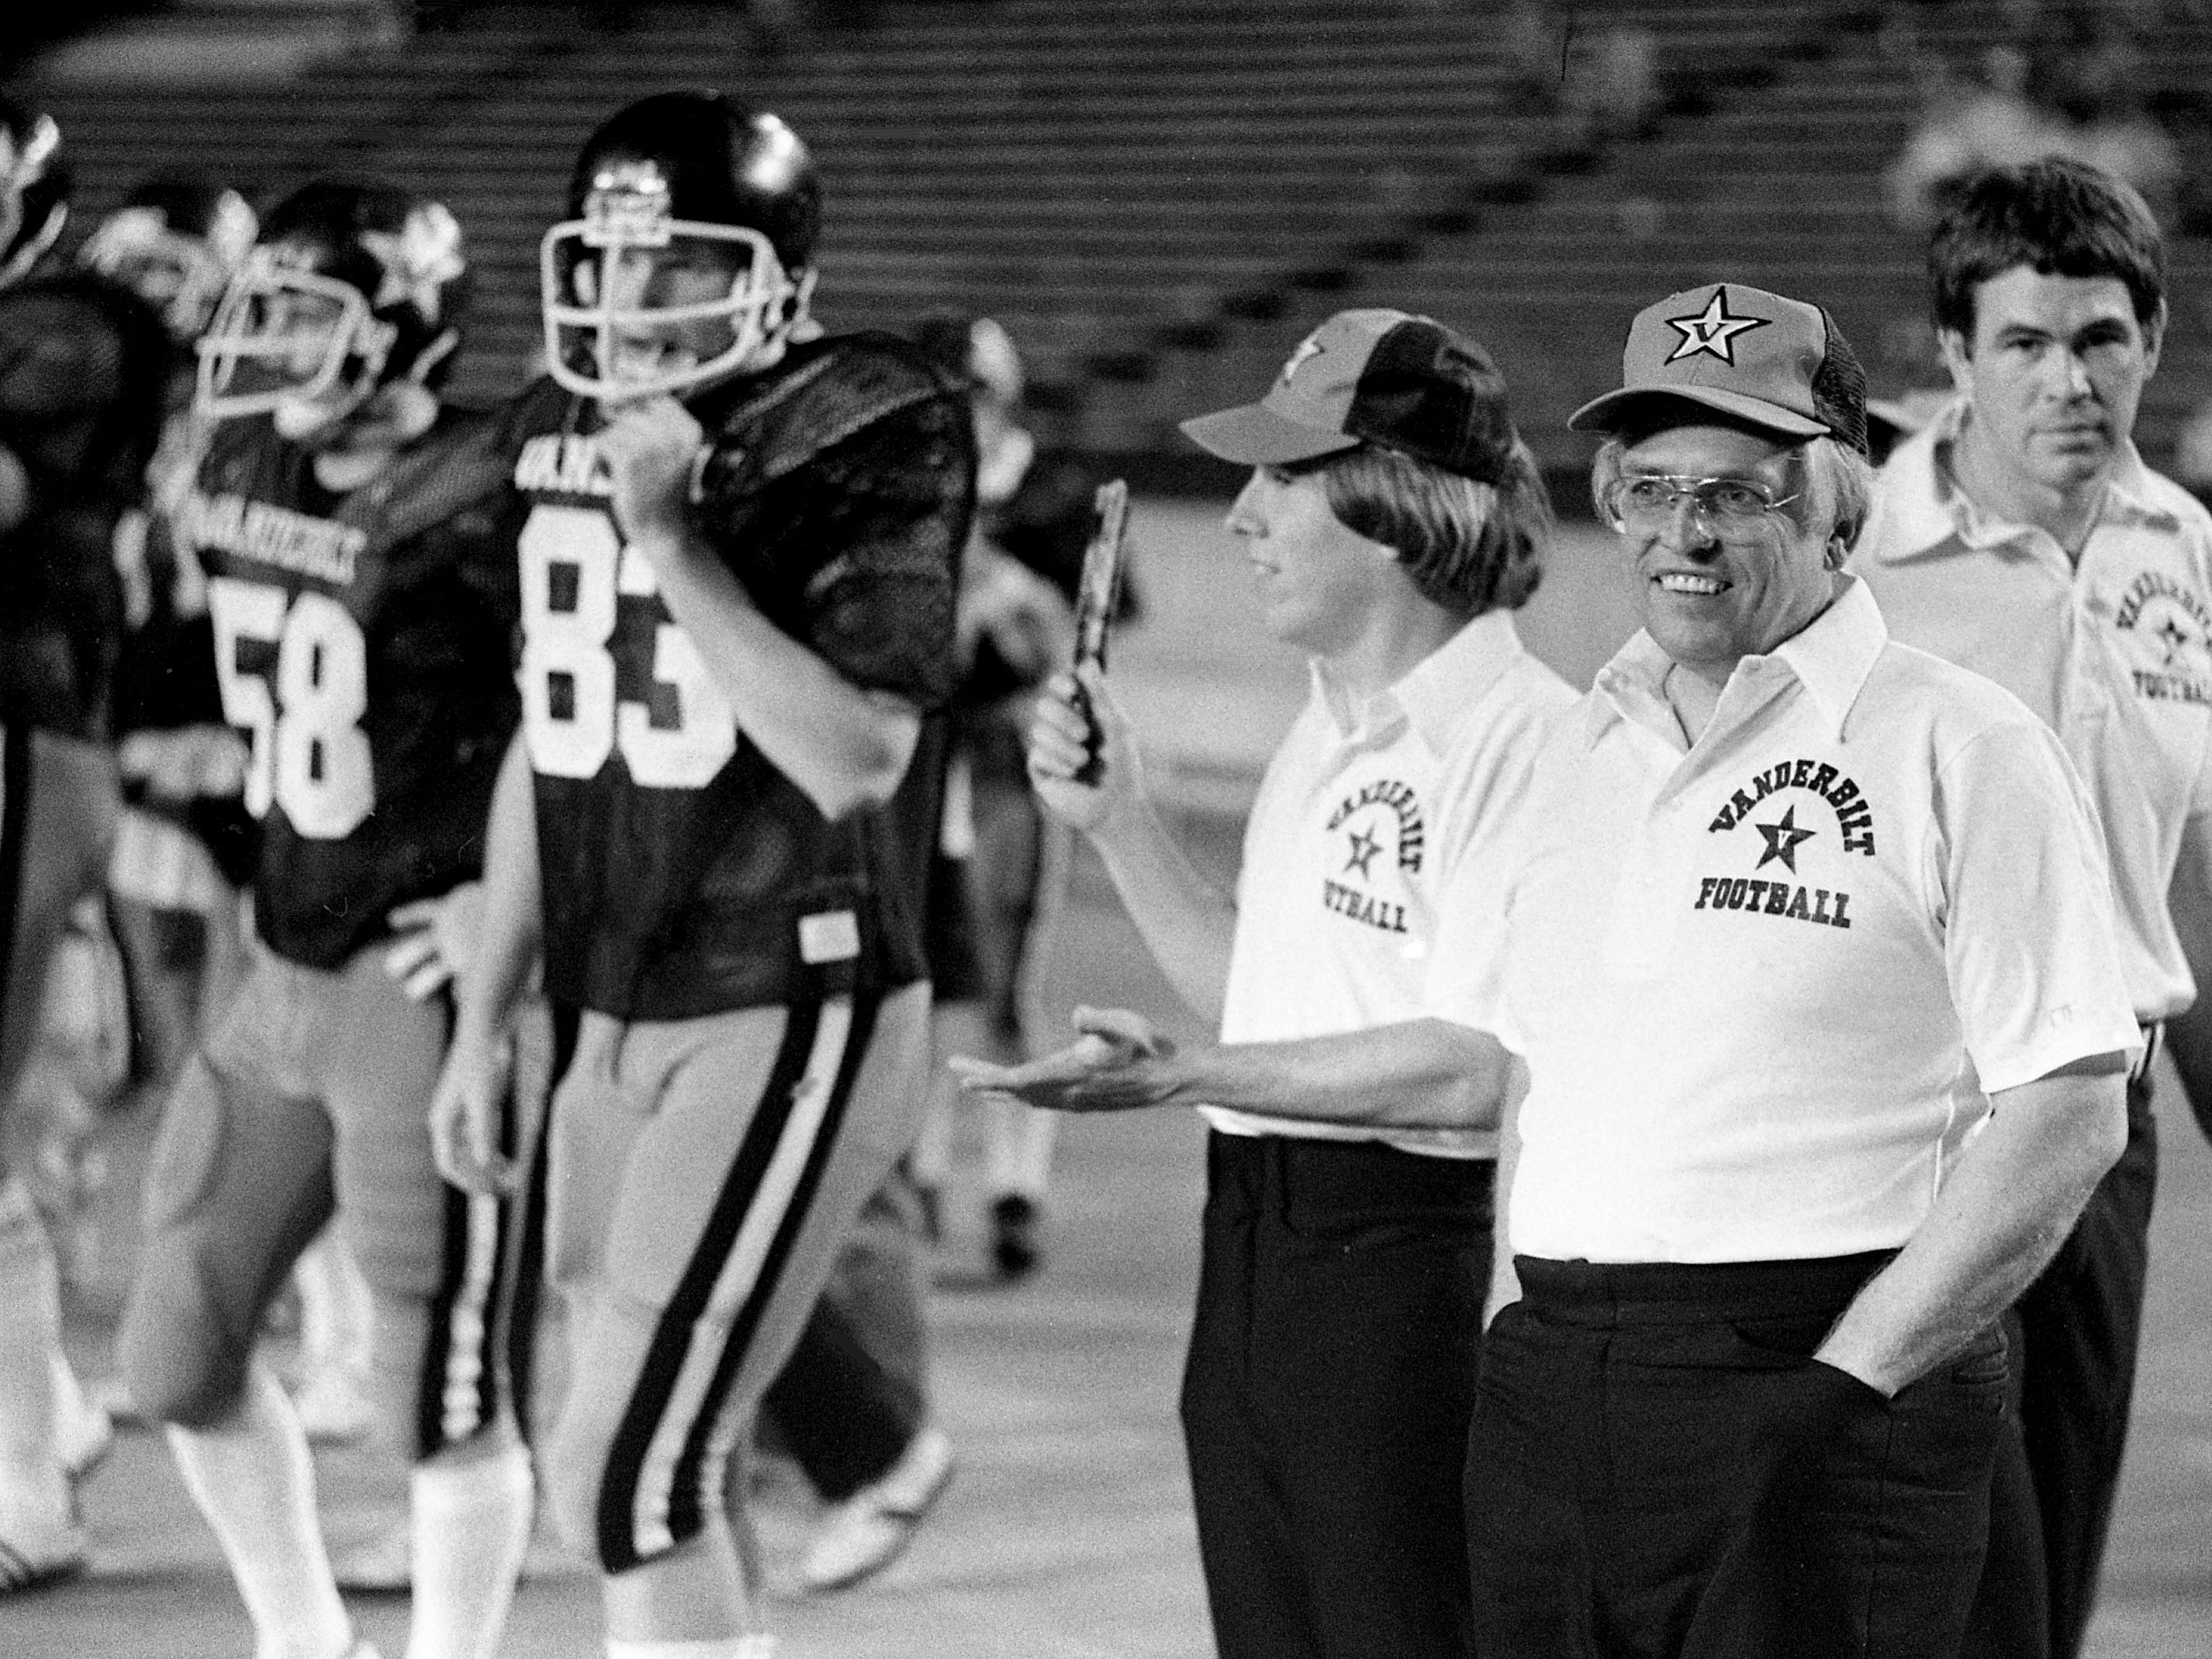 The Tennessean sportswriter Jimmy Davy, front right, and the Nashville Banner sportswriter Tom Robinson, center, both honorary media coaches for the Black Team, look on before the start of the annual Vanderbilt spring football game at Dudley Field on April 21, 1979.